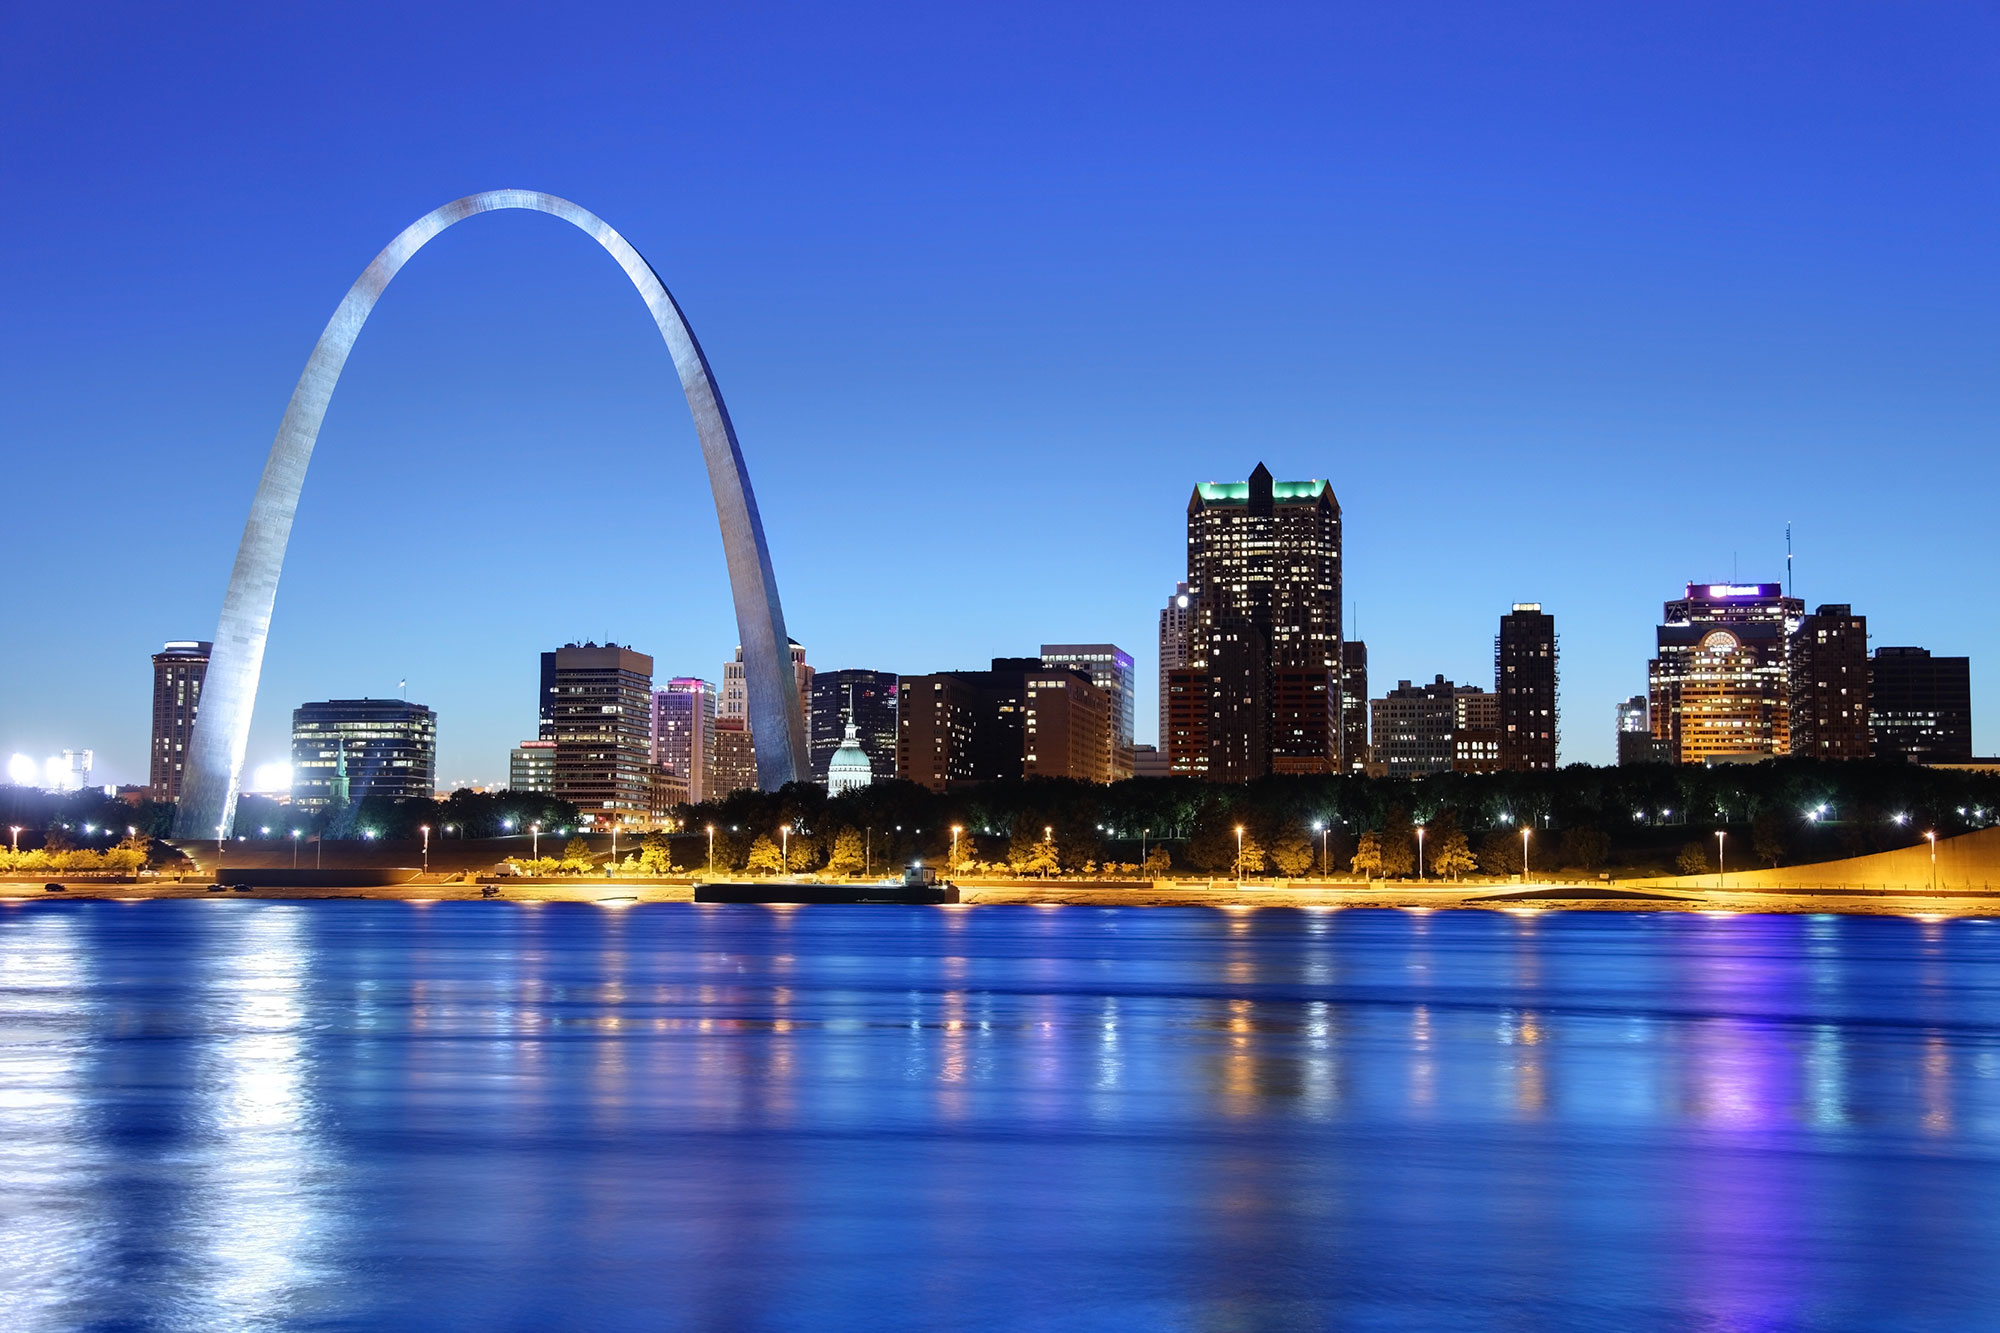 2. St. Louis, Missouri